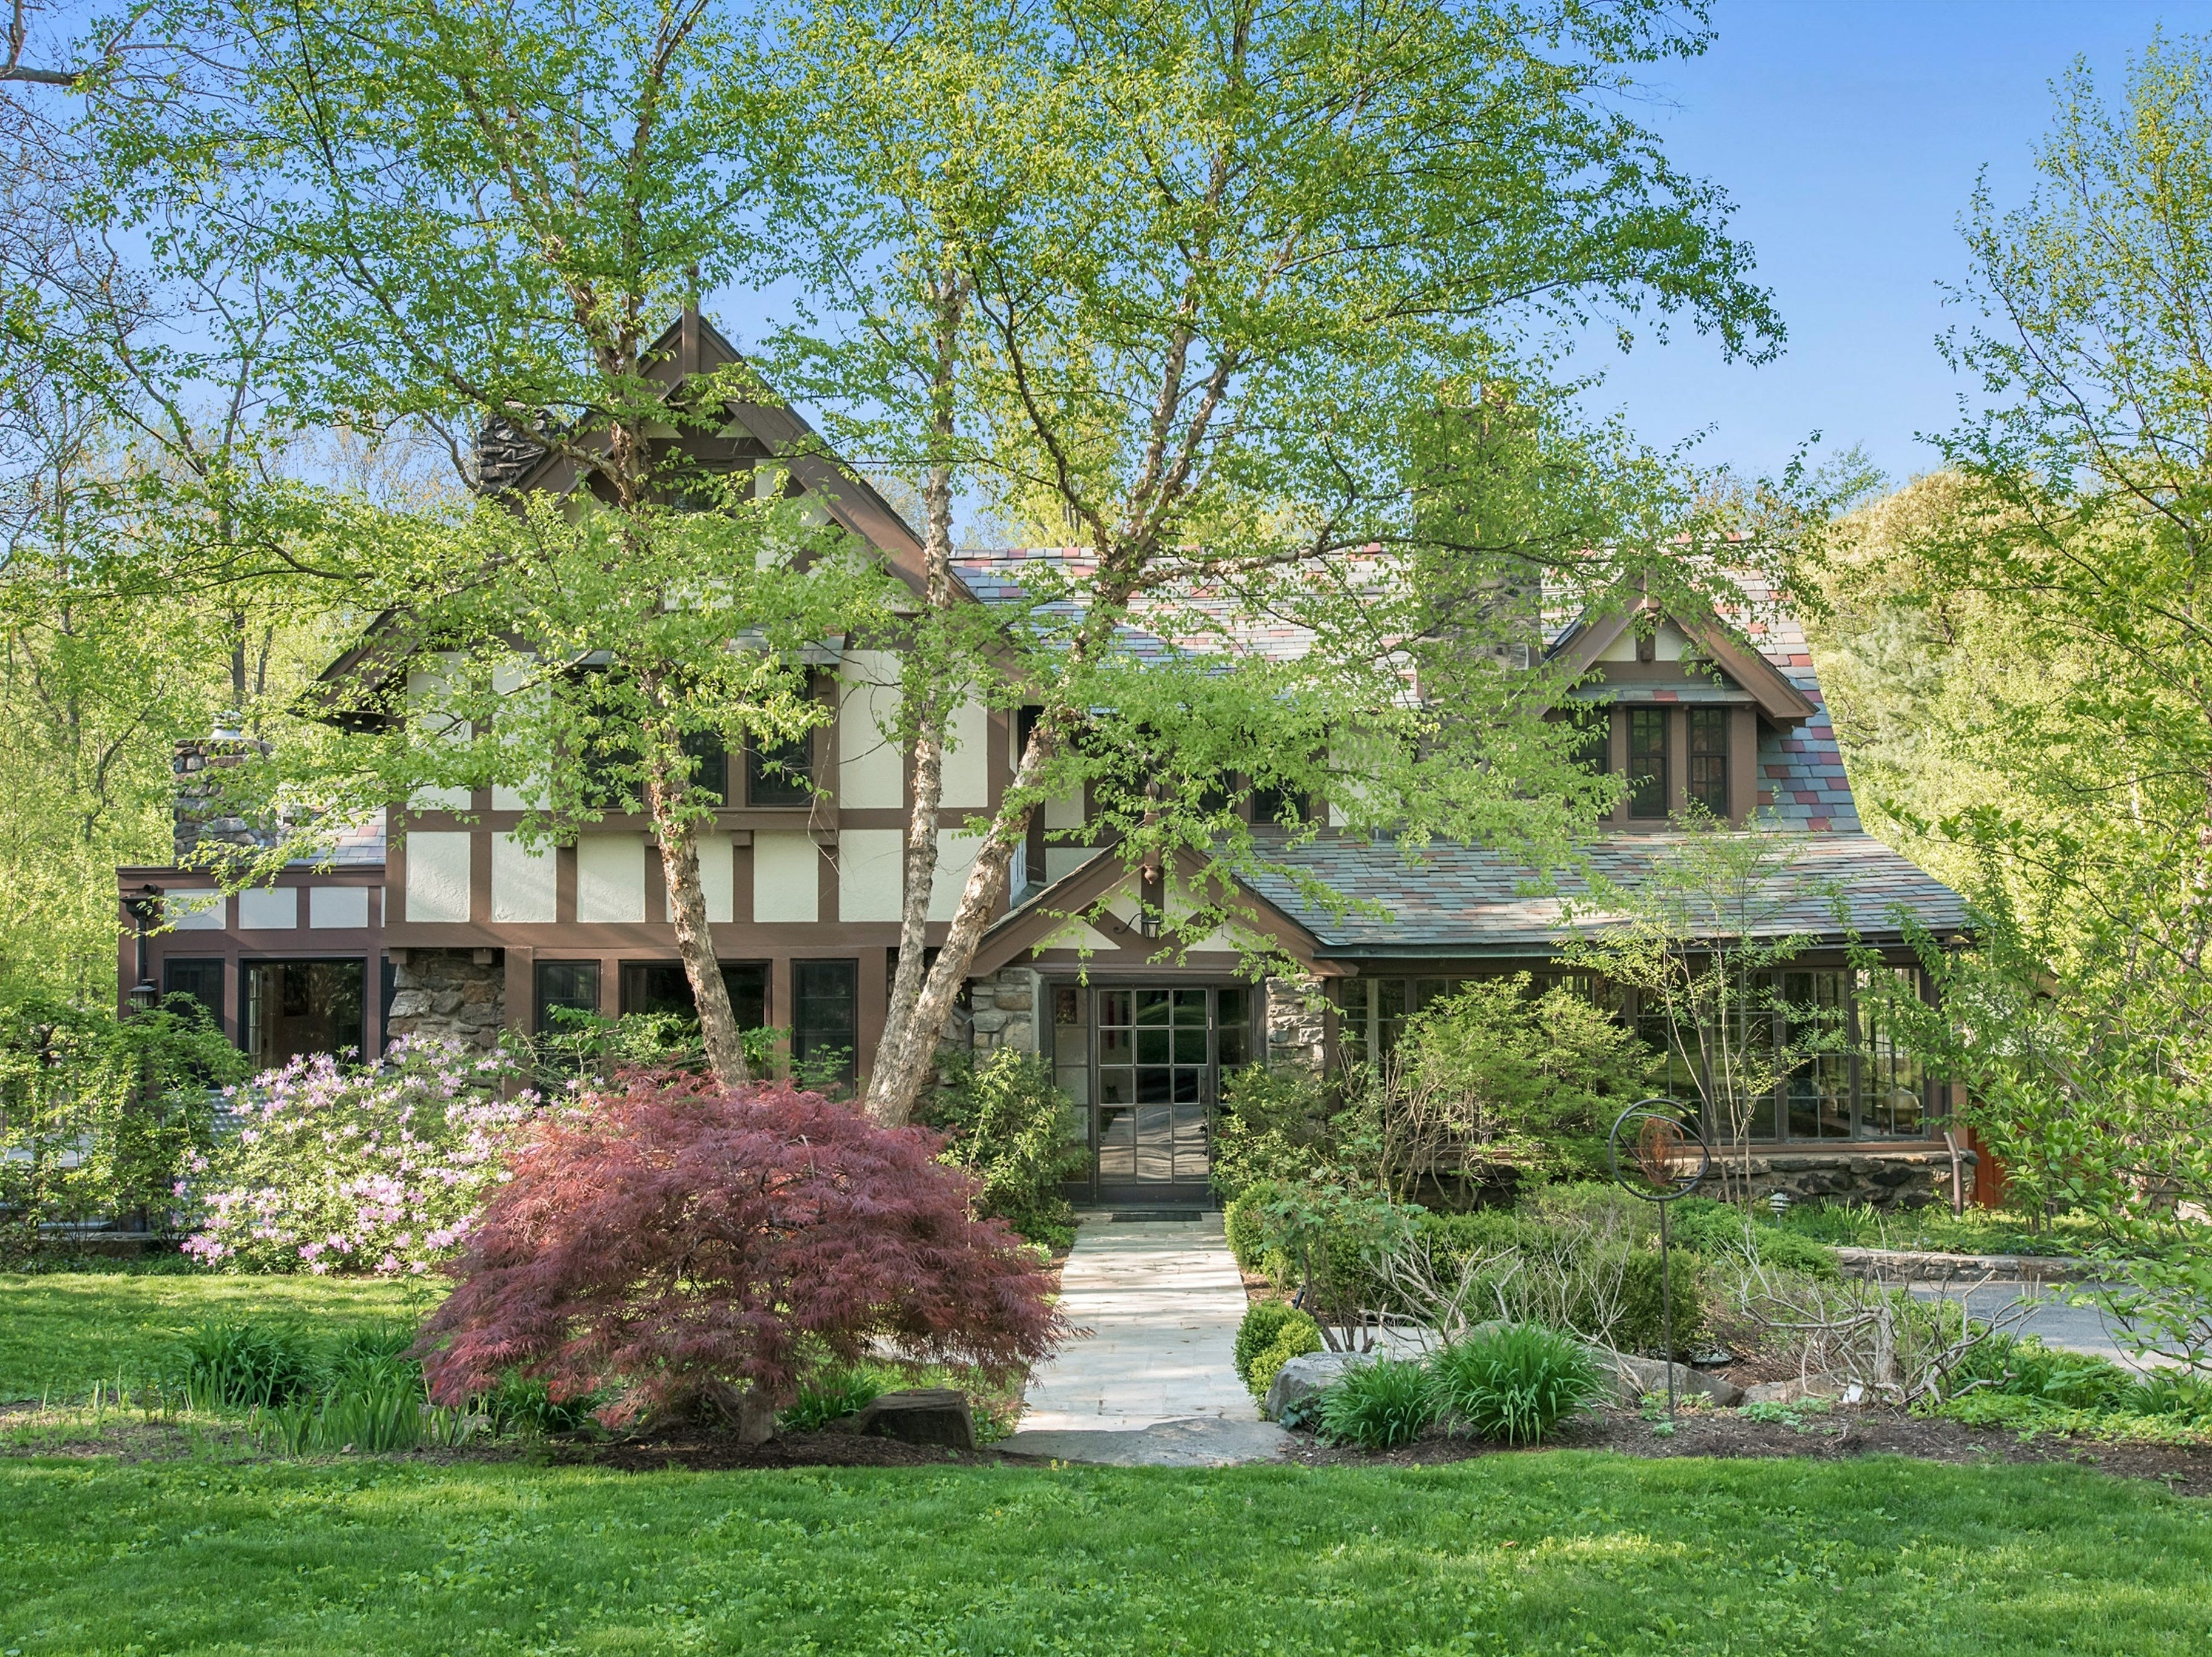 This home in Scarsdale is on the market for $1,999,999.